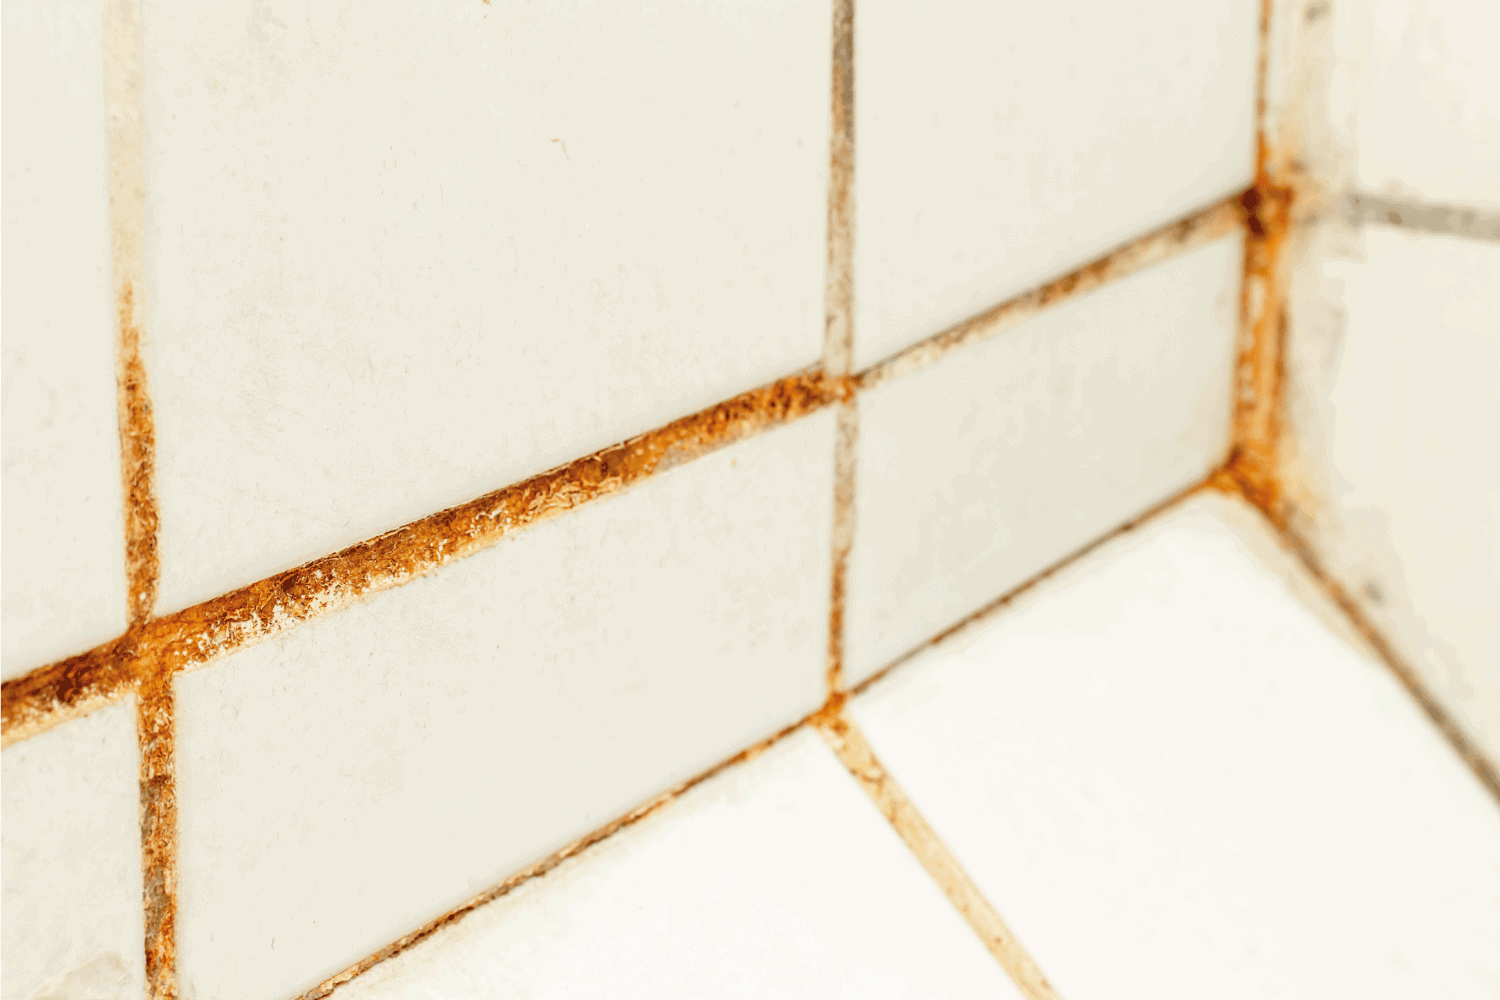 Mold fungus and rust growing in tile joints in damp poorly ventilated bathroom with high humidity